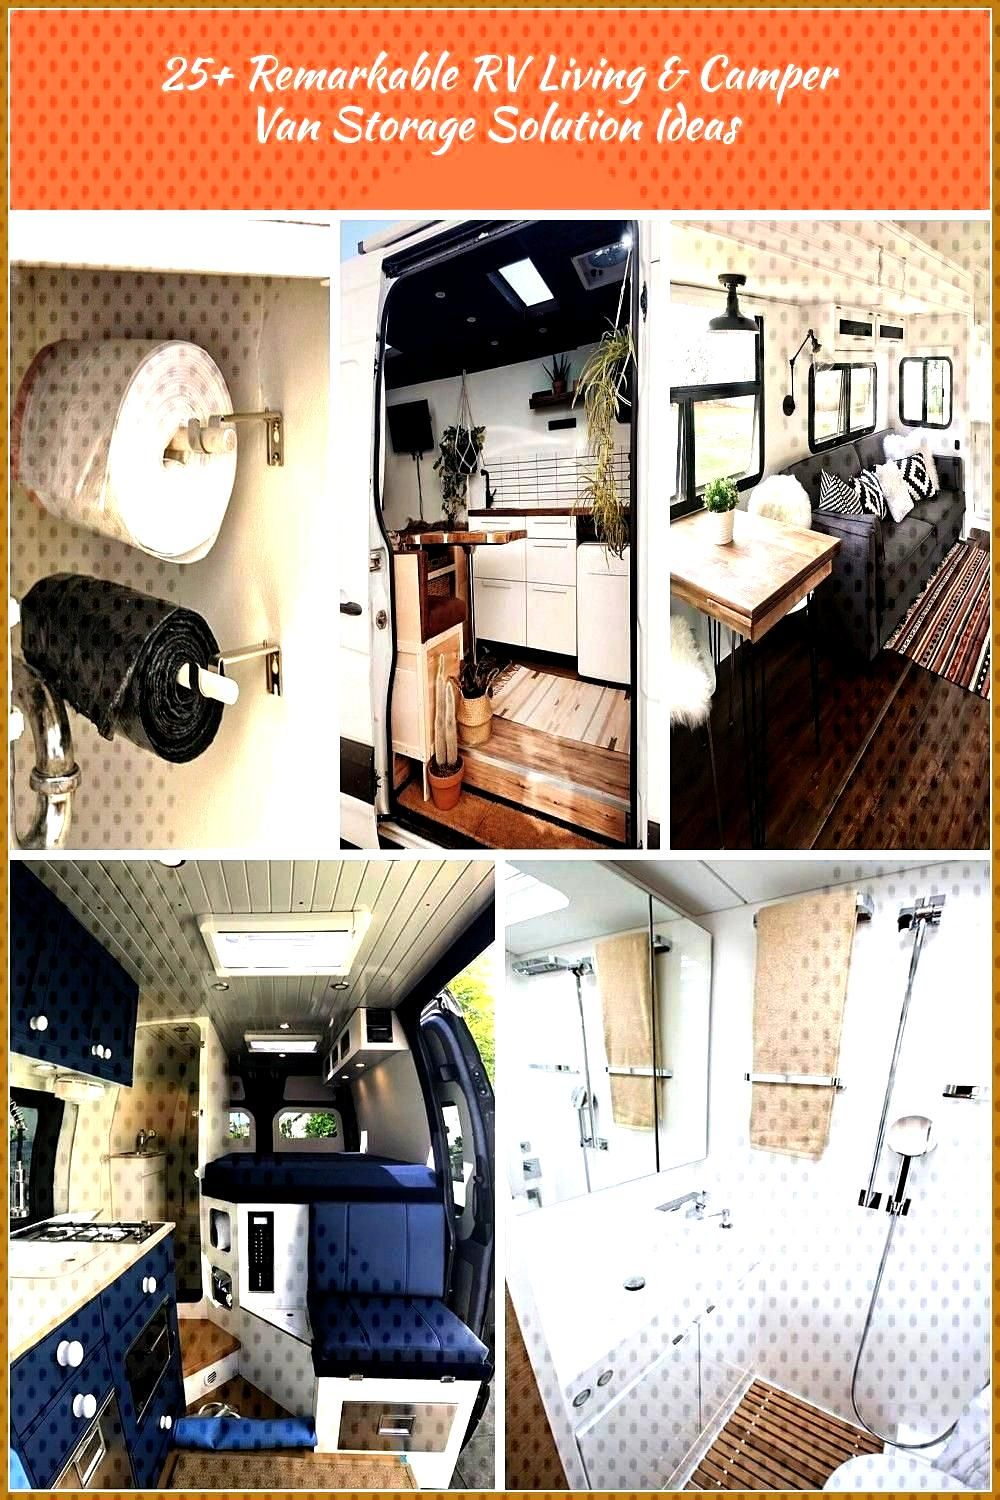 25 Remarkable RV Living 038 Camper Van Storage Solution Ideas rvliving campervan storagesolutions i